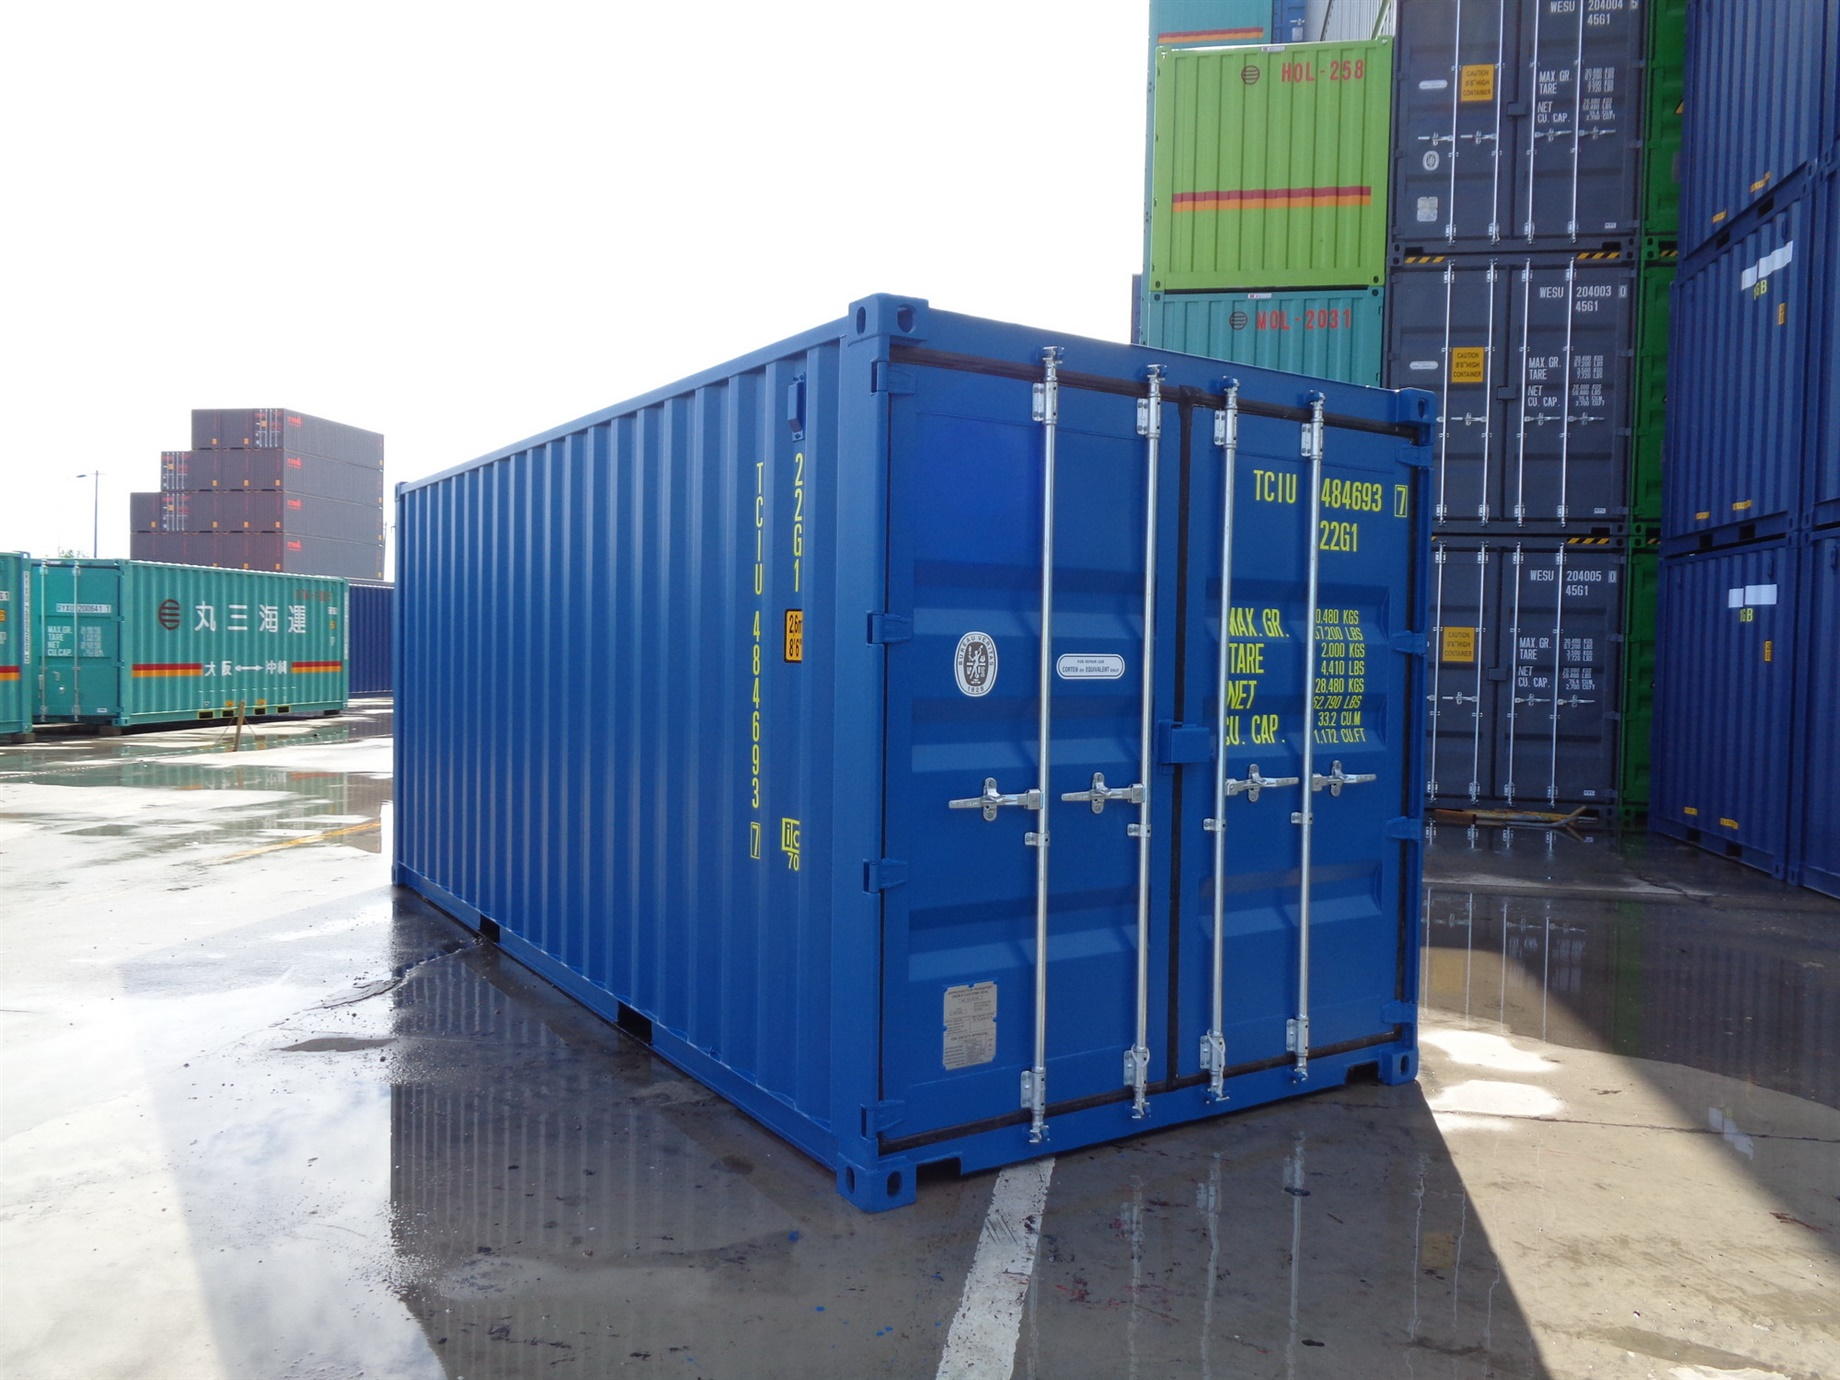 20 foot HC High Cube light blue storage container titan containers